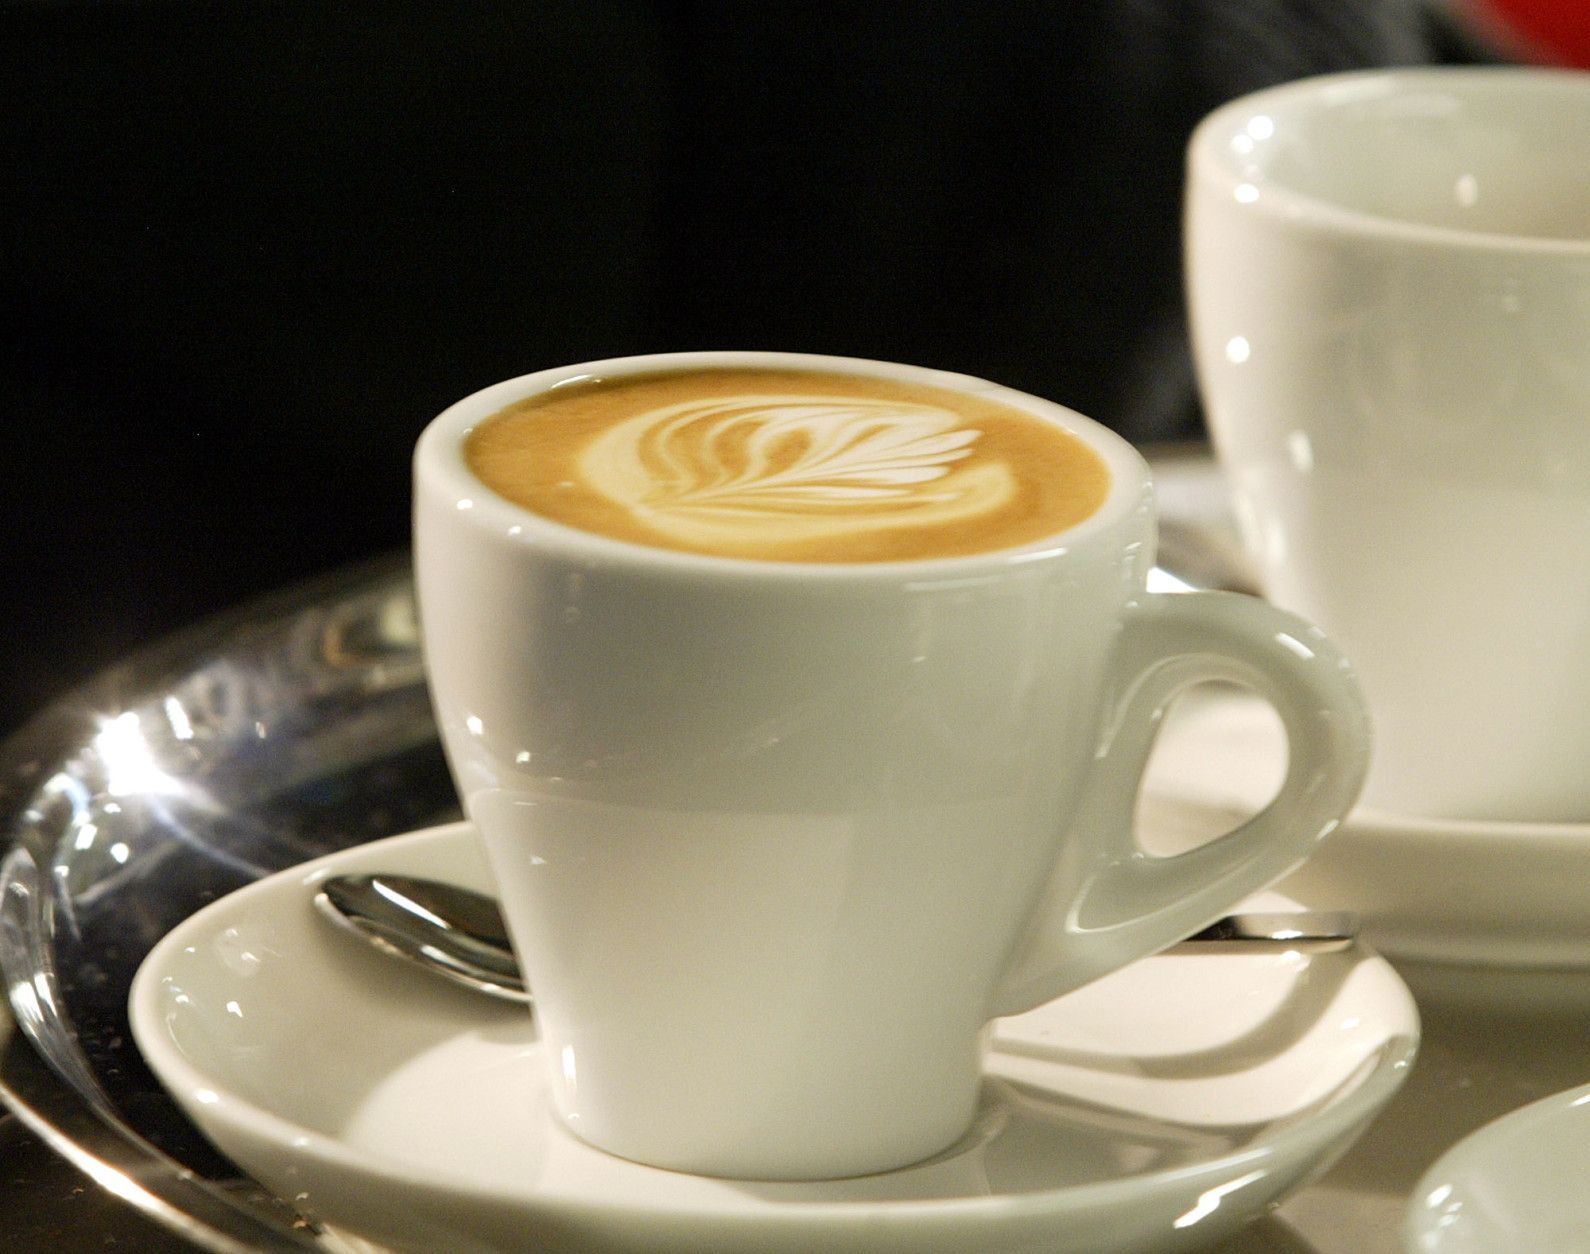 """<p><strong>A coffee crawl</strong></p> <p>D.C.&#8217;s in the midstof a coffee renaissance, so take your coffee-loving visitors to some of the city&#8217;s newest cafes. Stroll along 14th Street and try the java at<a href=""""http://slipstreamdc.com/"""" target=""""_blank"""" rel=""""noopener noreferrer"""">Slipstream</a>, <a href=""""http://peregrineespresso.com/?page_id=17"""" target=""""_blank"""" rel=""""noopener noreferrer"""">Peregrine</a>, <a href=""""https://dolcezzagelato.com/"""" target=""""_blank"""" rel=""""noopener"""">Dolcezza</a>, <a href=""""https://www.coladashop.com/"""" target=""""_blank"""" rel=""""noopener"""">Colada Shop</a>,and <a href=""""http://thewydown.com/"""" target=""""_blank"""" rel=""""noopener noreferrer"""">The Wydown</a>. Then, burn off some of that extra &#8220;energy&#8221; with a walk-up to Meridian Hill Park for a picnic.</p>"""